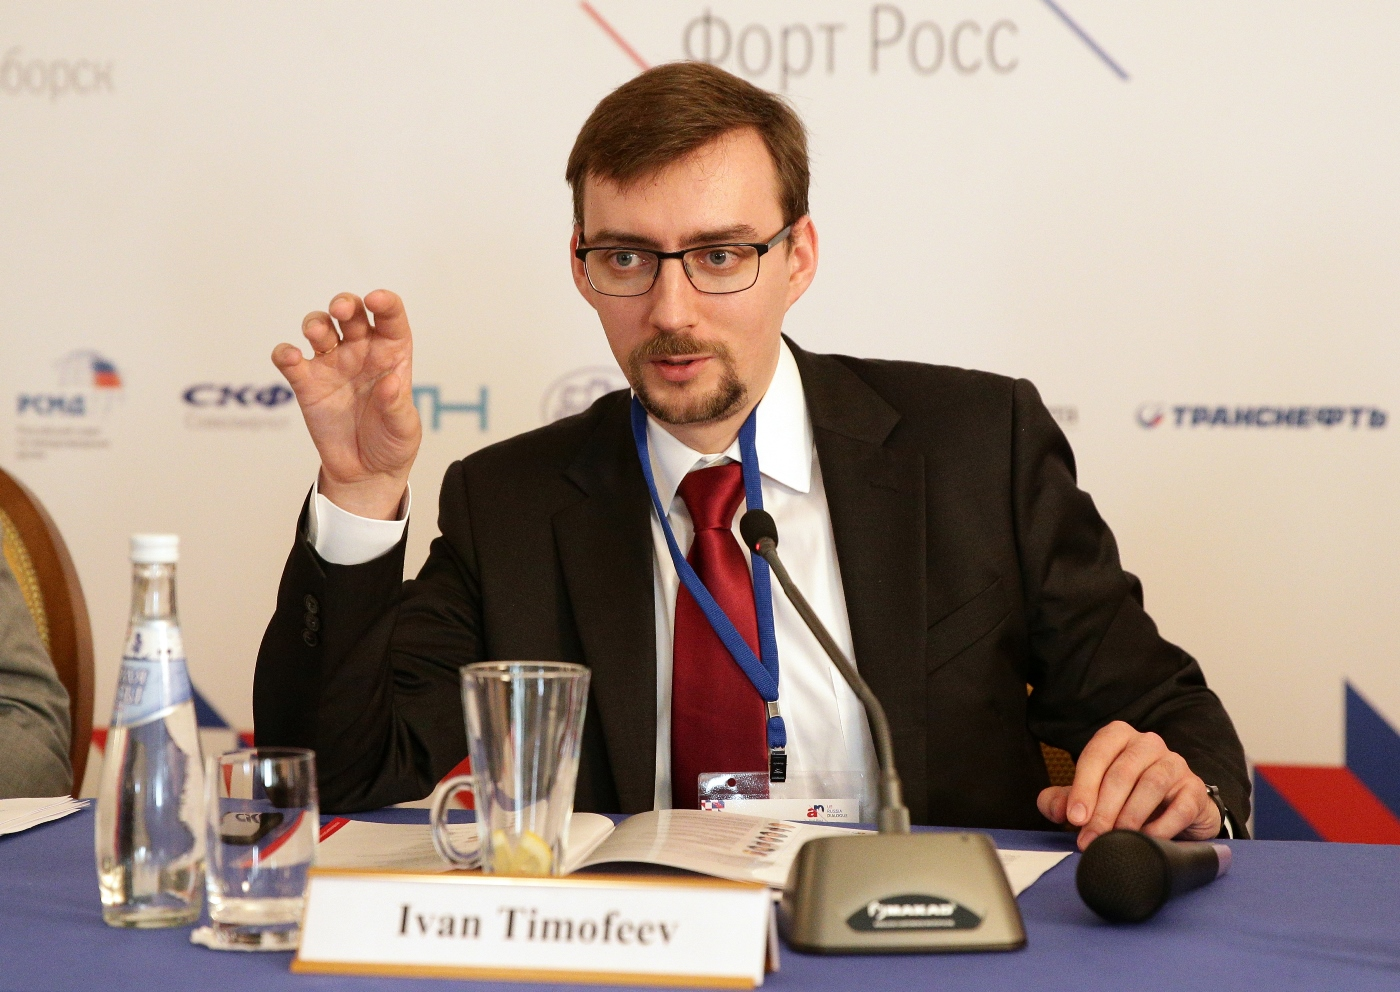 """Ivan Timofeev, director of programs at the Russian Internal Affairs Council, moderator of the discussion """"Russia-U.S. cooperation in energy and climate change: Interests, issues, prospects.""""\n"""